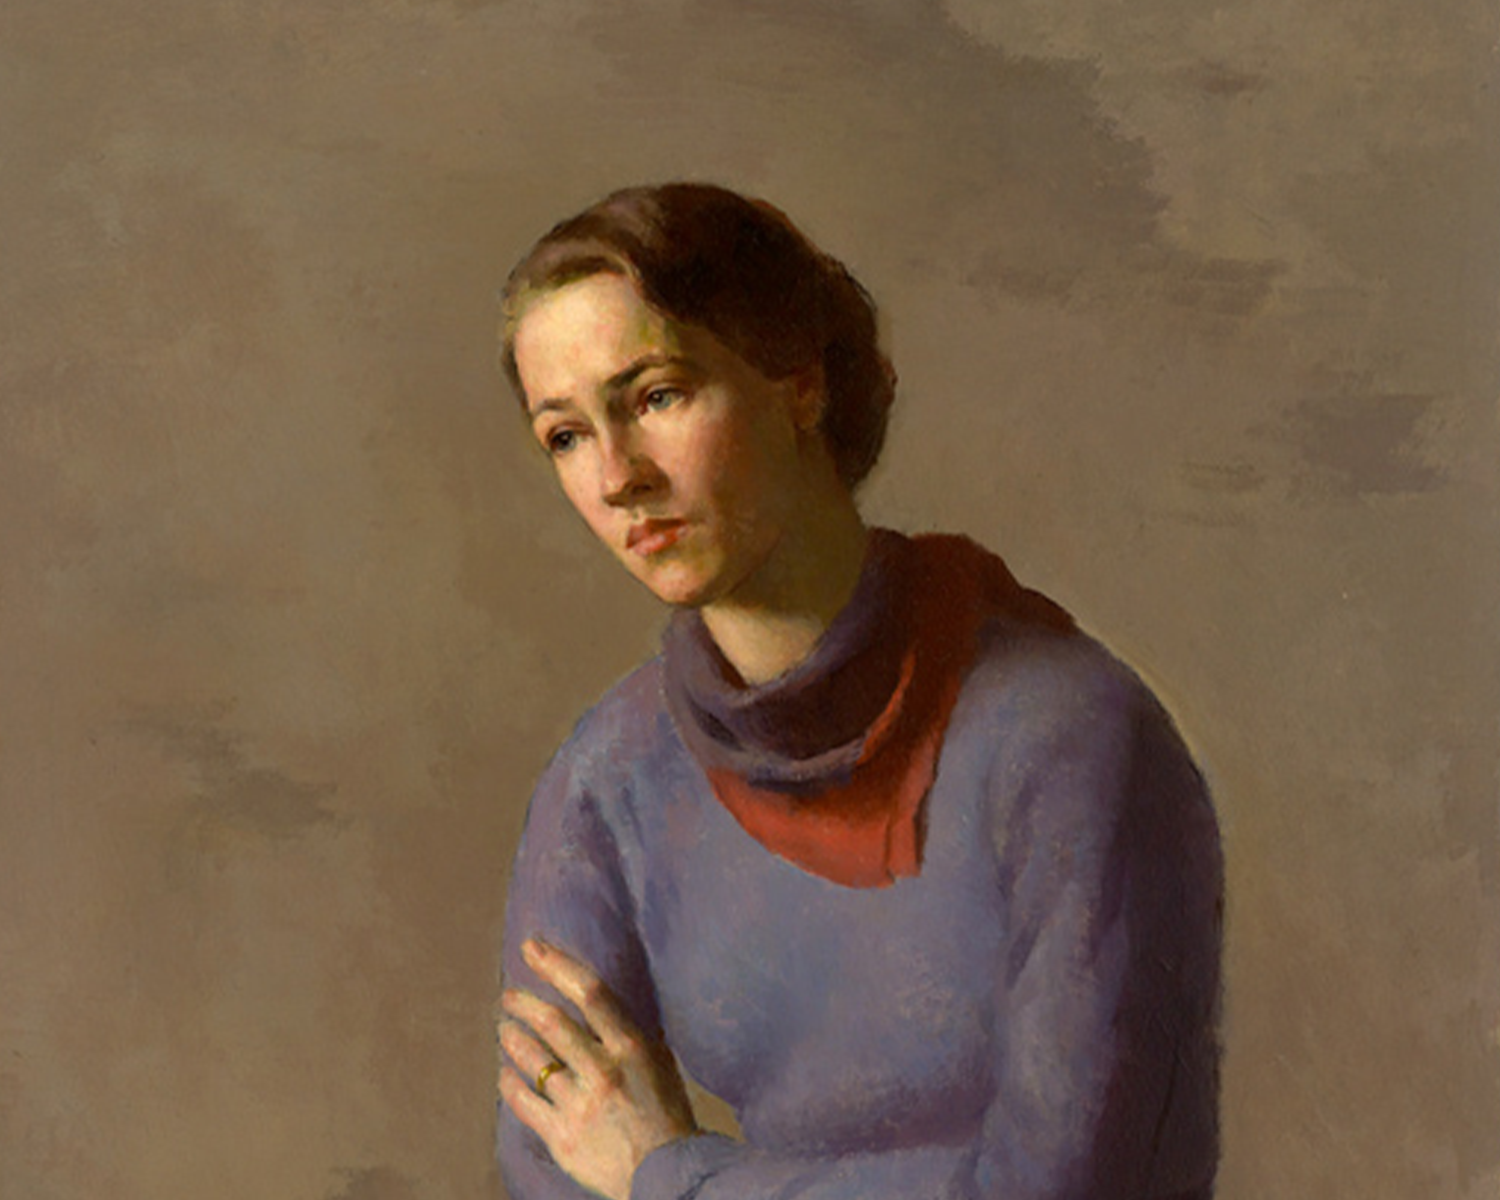 This detail of Anne Morrow Lindbergh shows her bust. Slightly hunched over with a sad expression on her face, she wears a purple sweater and red scarf and looks slightly downward.